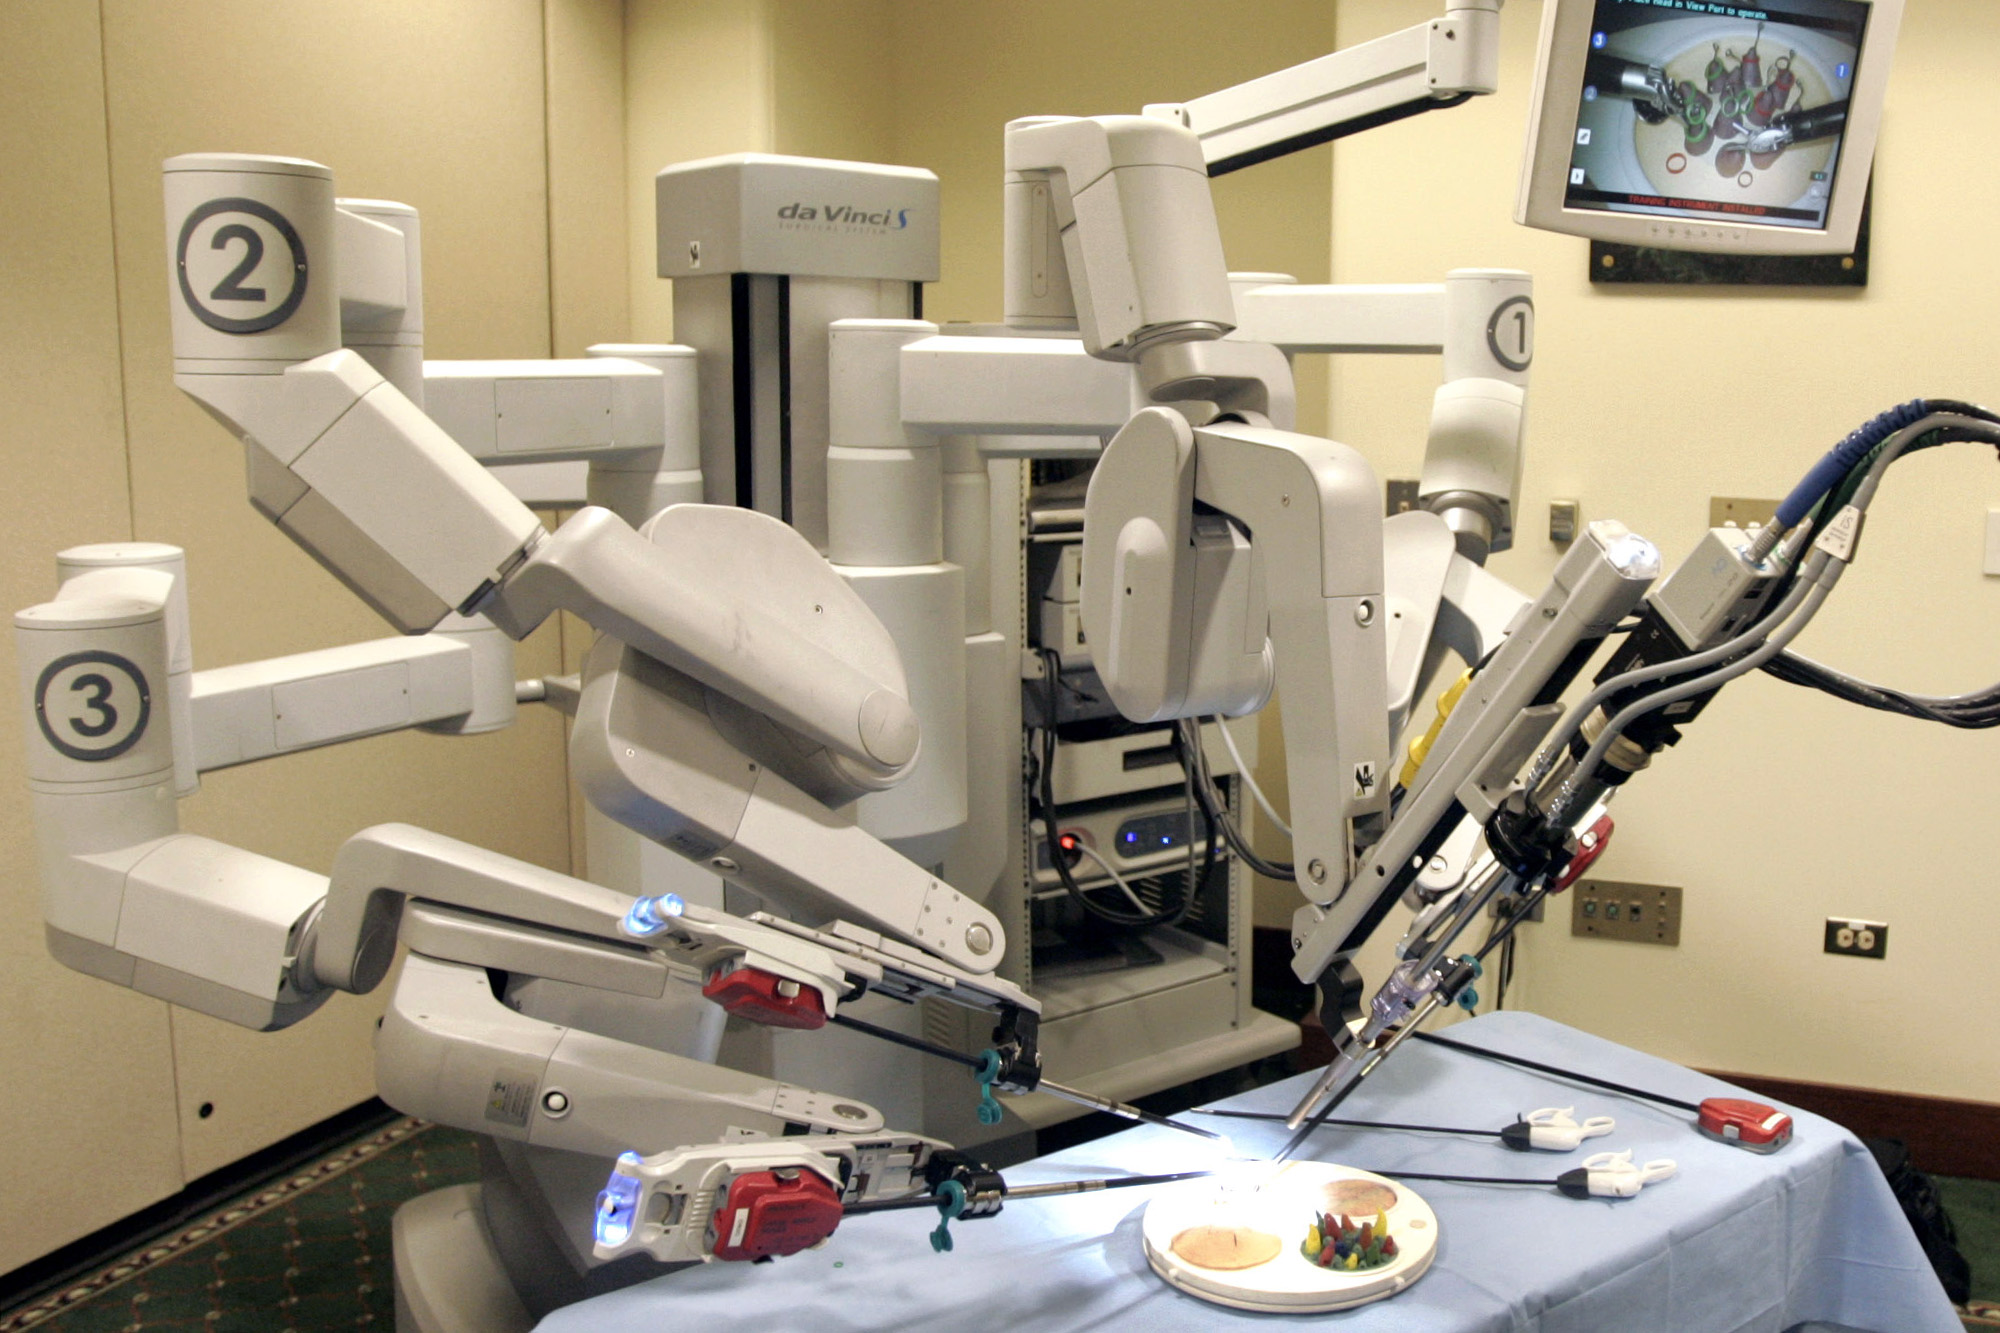 Ae da Vinci Surgical Robot at a hospital in Pittsburgh. (AP Photo/Keith Srakocic)